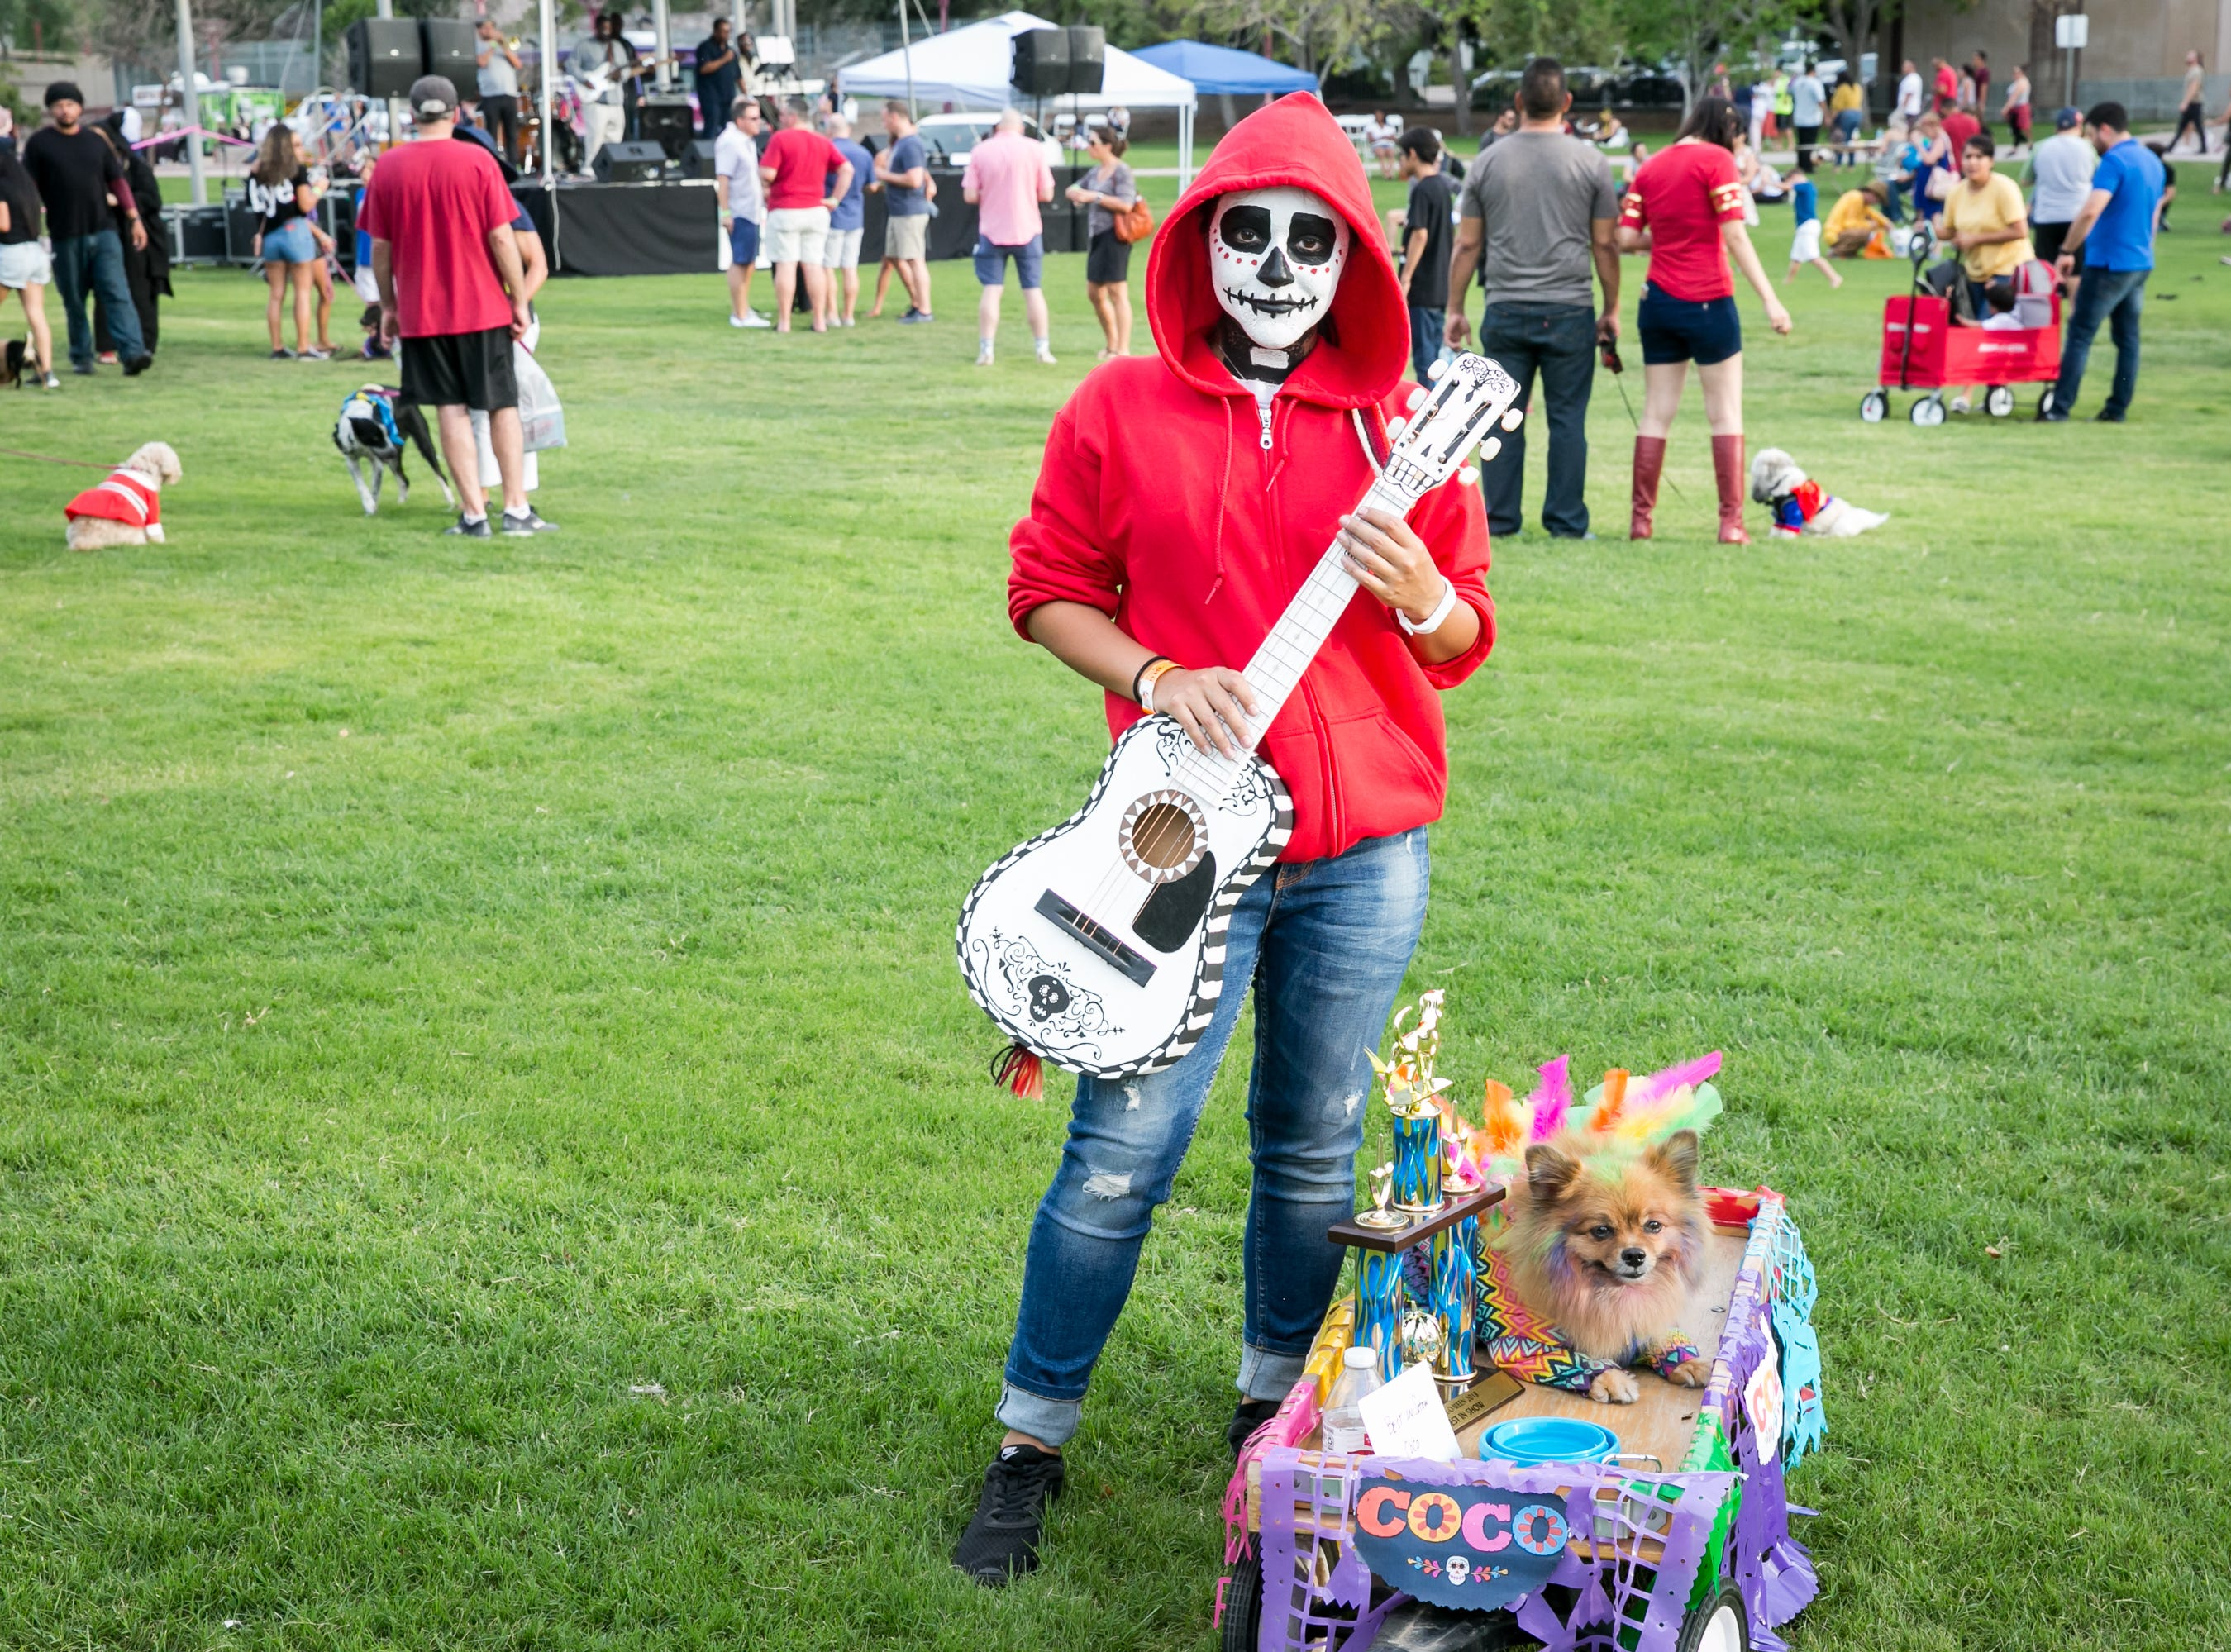 Coco won the best overall costume prize during Howl-o-Ween at Hance Park on Sunday, October 28, 2018.